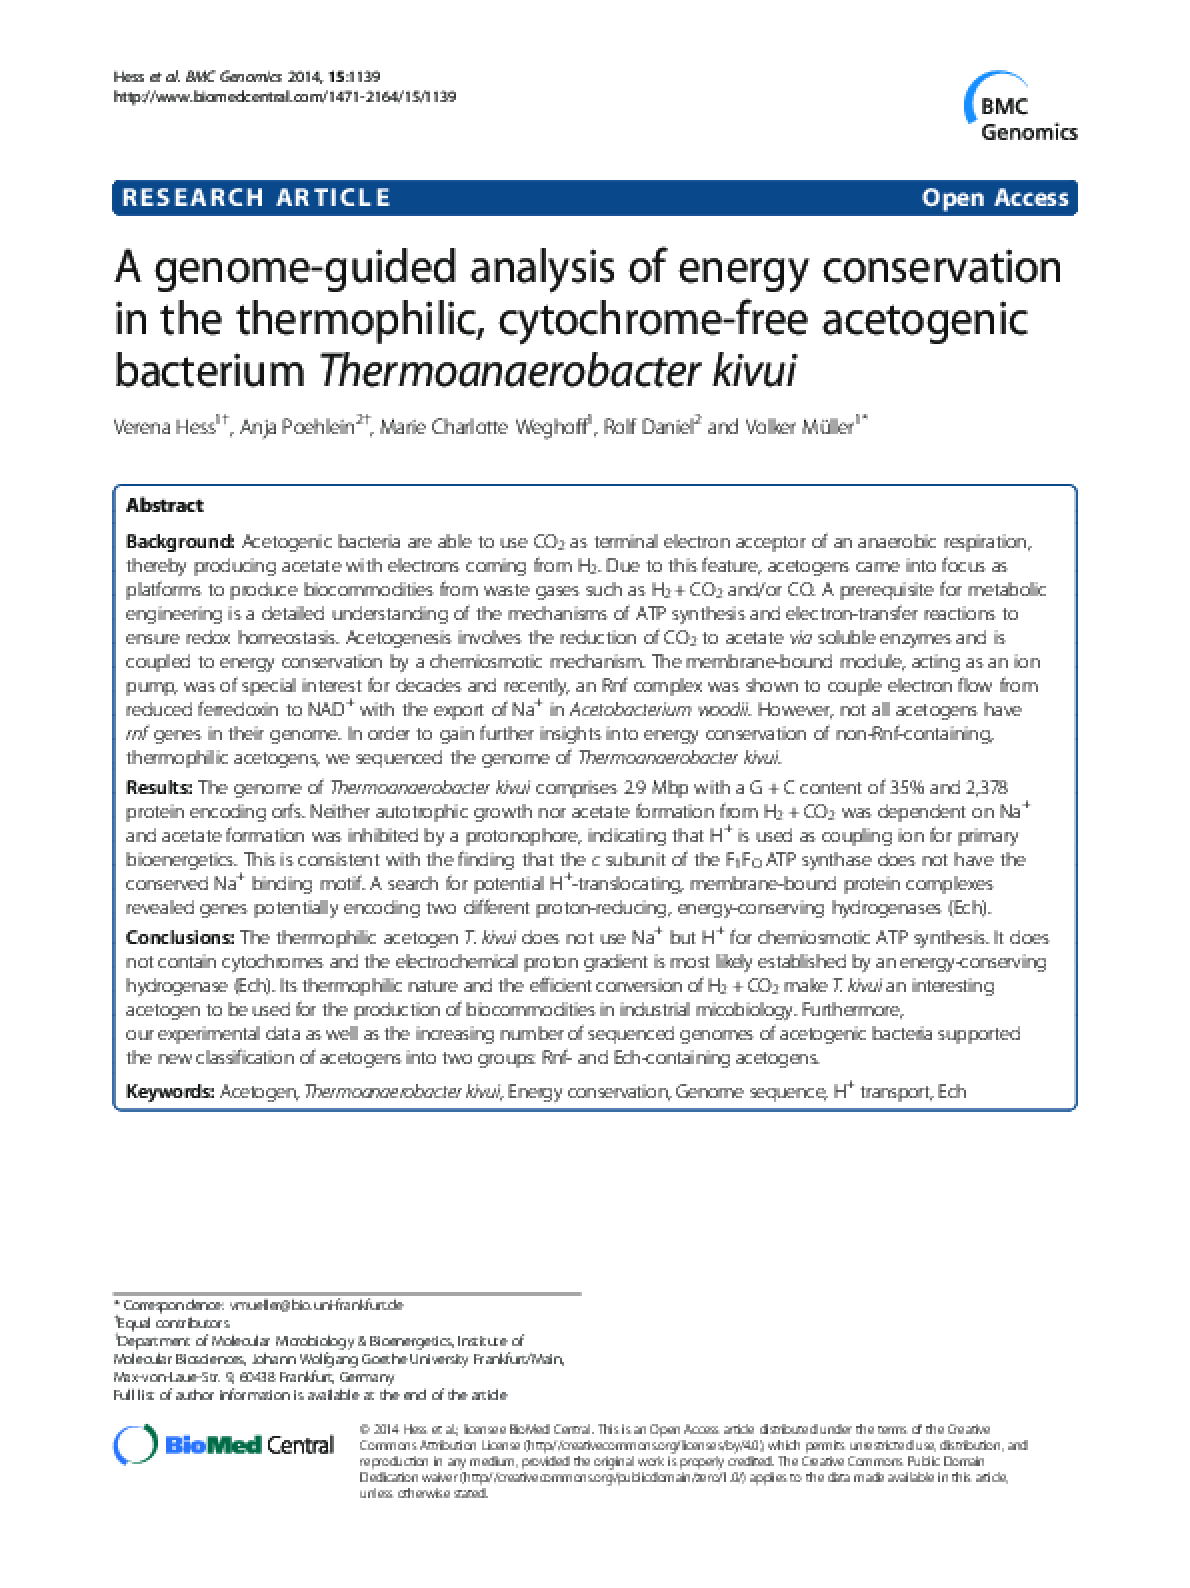 A genome-guided analysis of energy conservation in the thermophilic, cytochrome-free acetogenic bacterium Thermoanaerobacter kivui